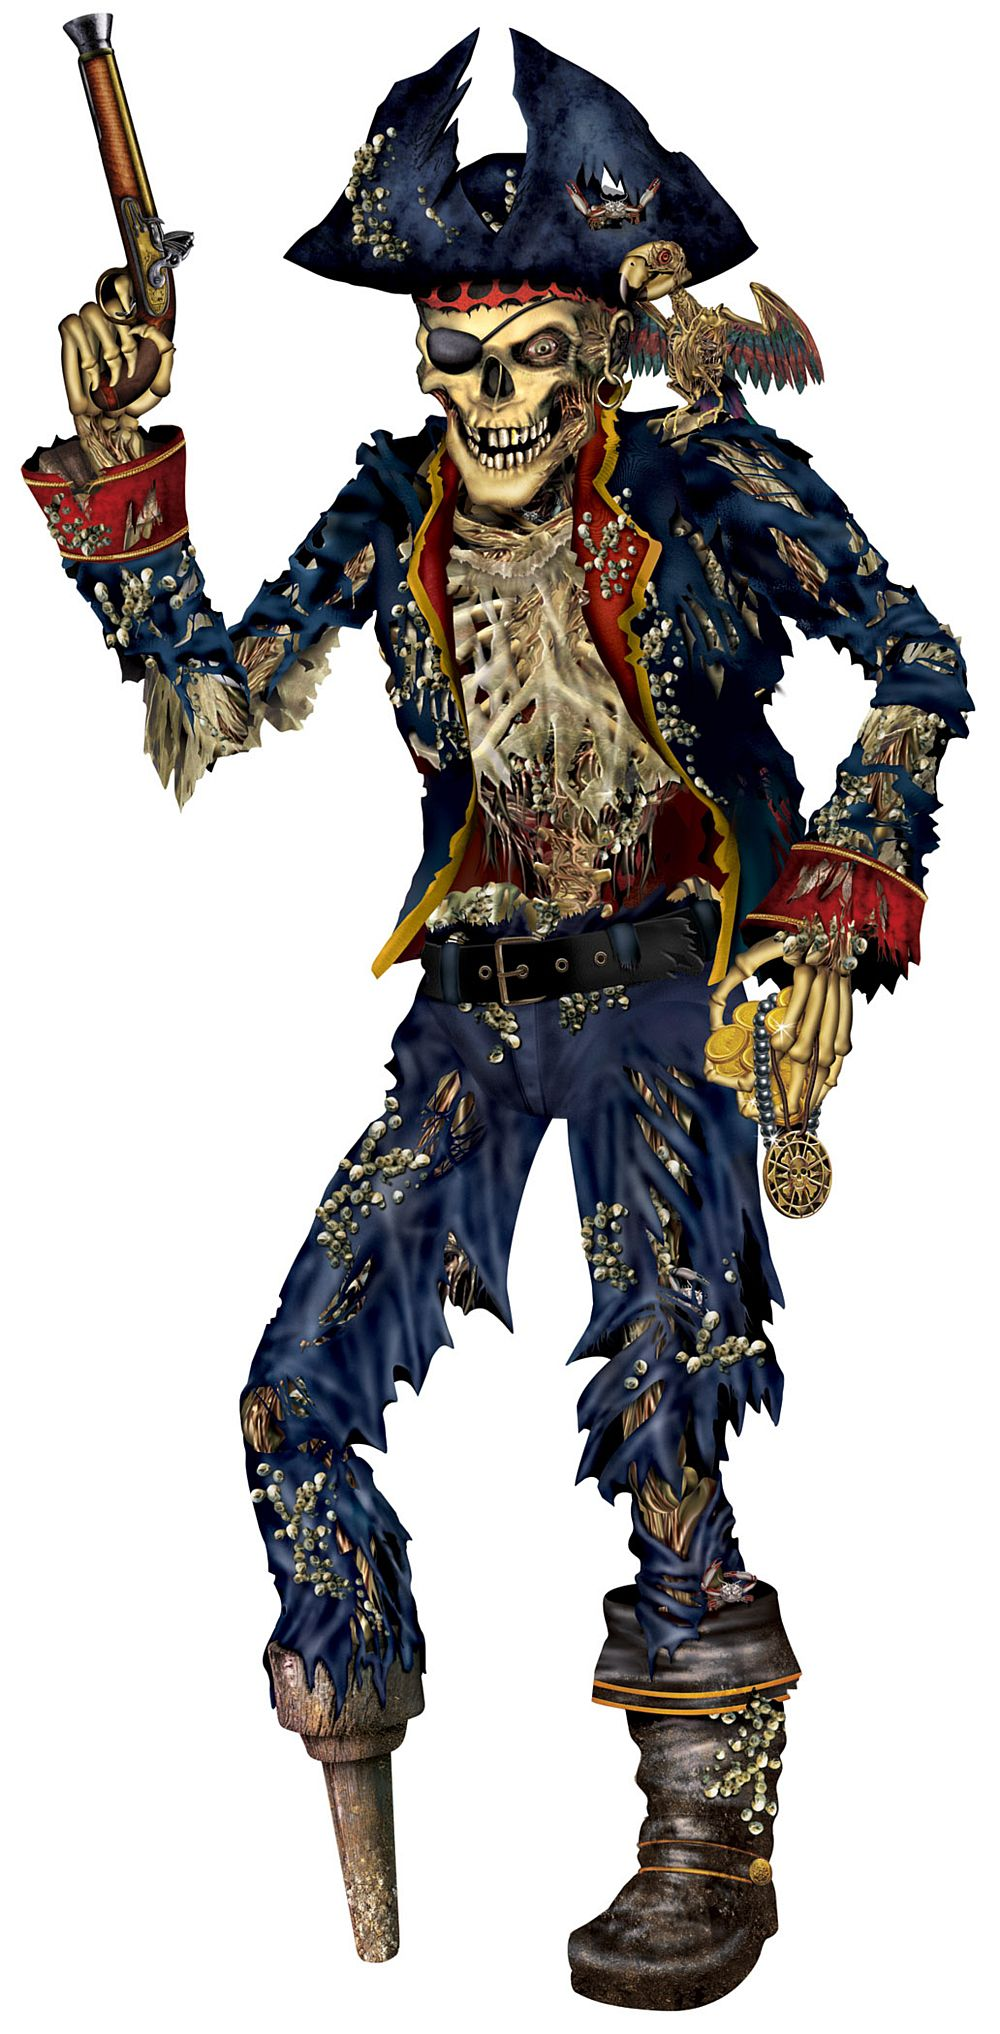 Pirate Skeleton Jointed Cutout Wall Decoration - 1.82m